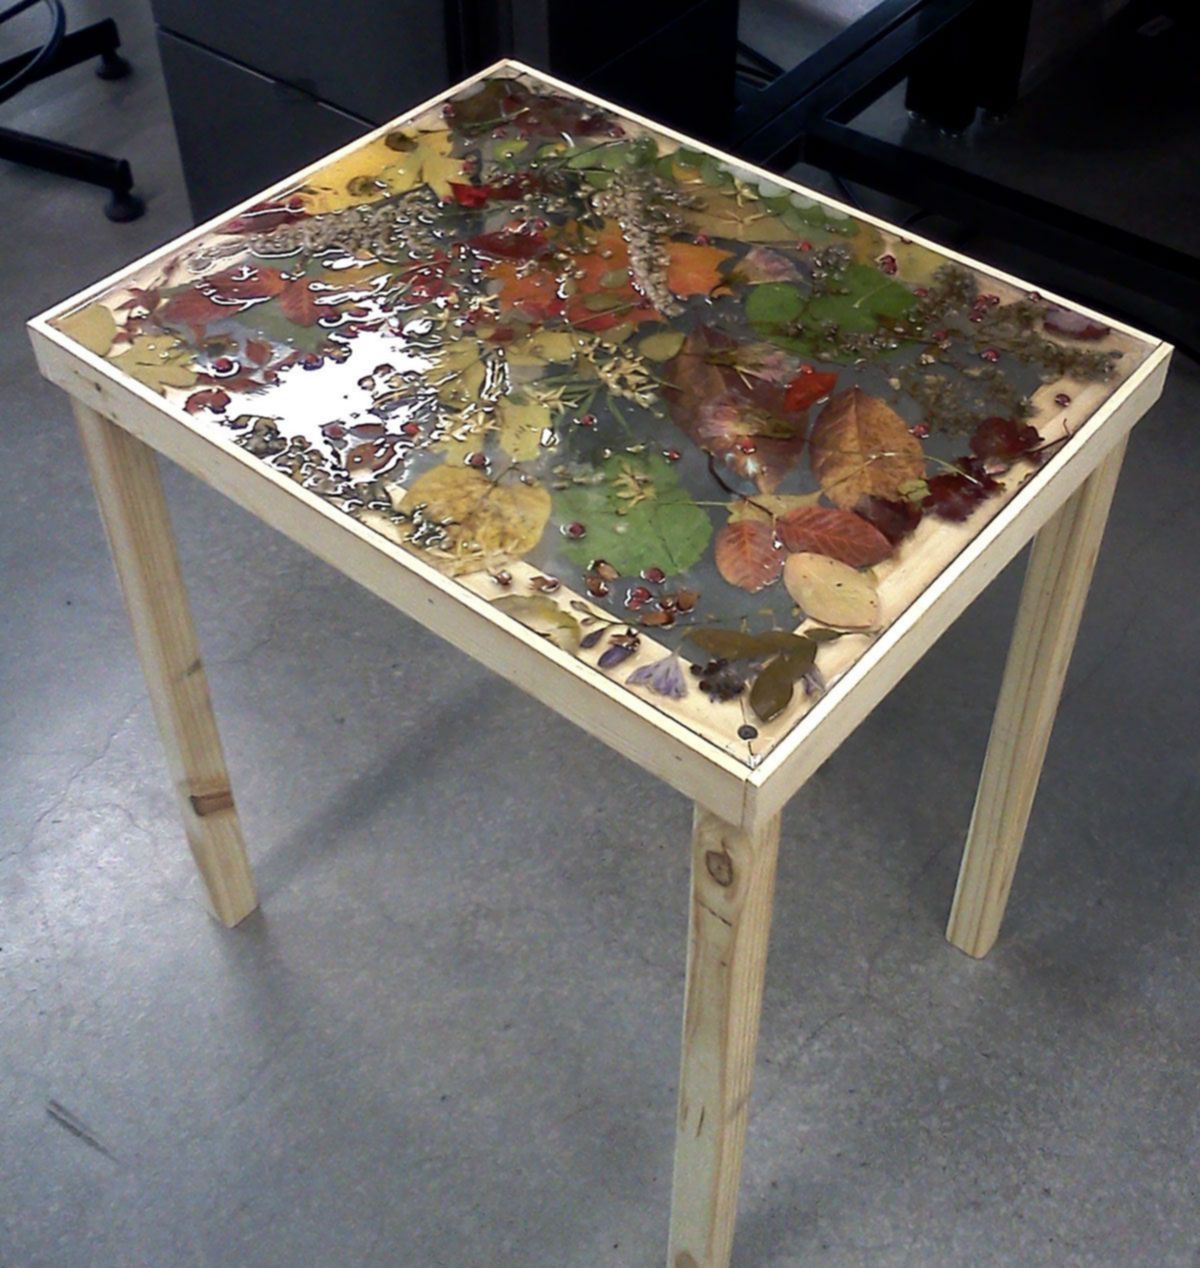 Unique Resin Wood Table Ideas 110 In 2020 Wood Table Design